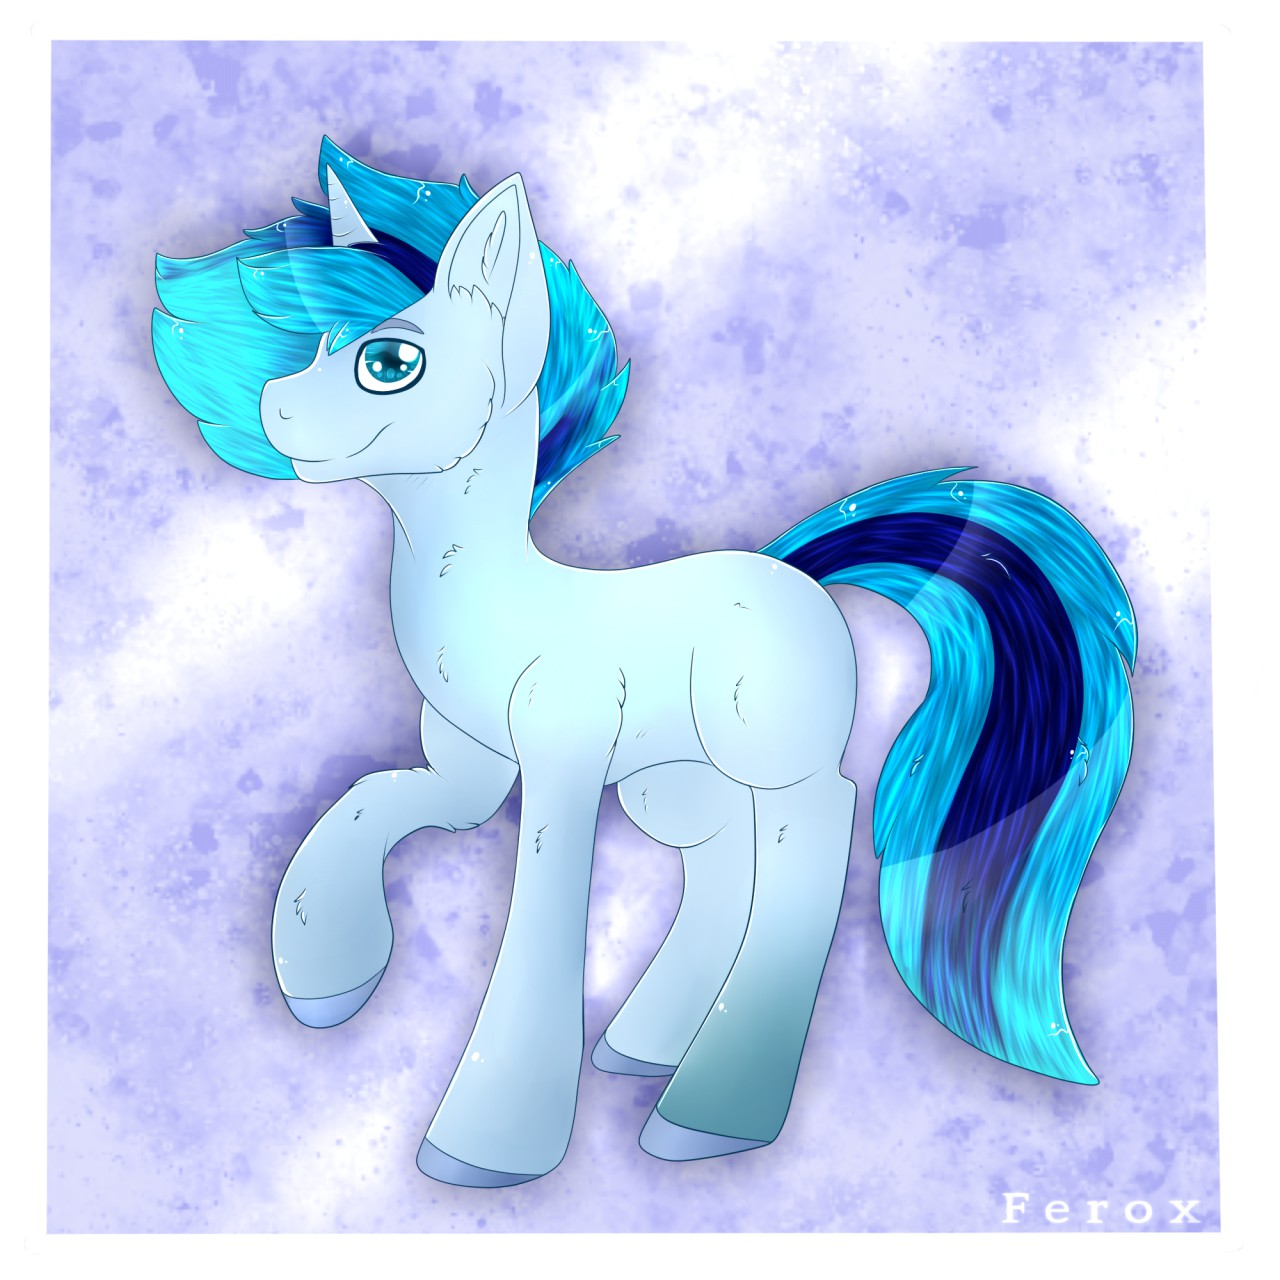 Thunder mlp clipart svg royalty free stock Thunder! MLP OC by Chuckyra -- Fur Affinity [dot] net svg royalty free stock